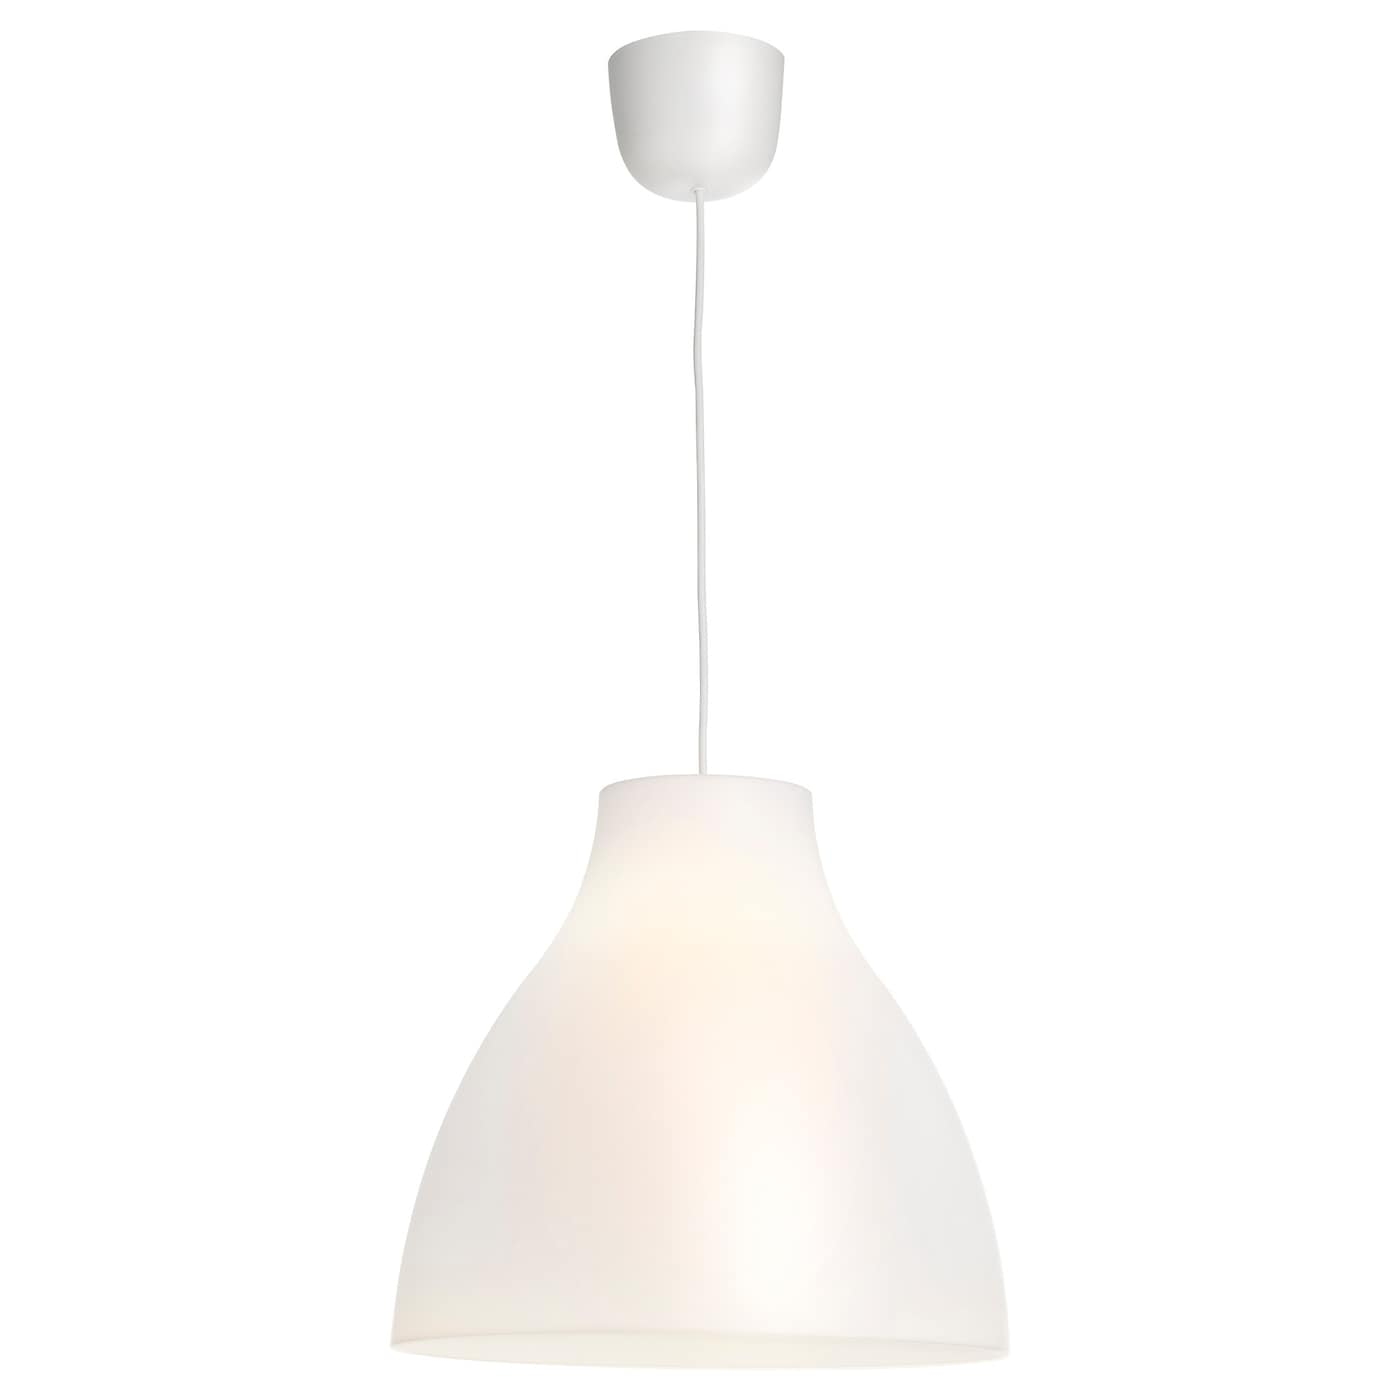 Ceiling lights led ceiling lights ikea - Ikea suspension luminaire ...